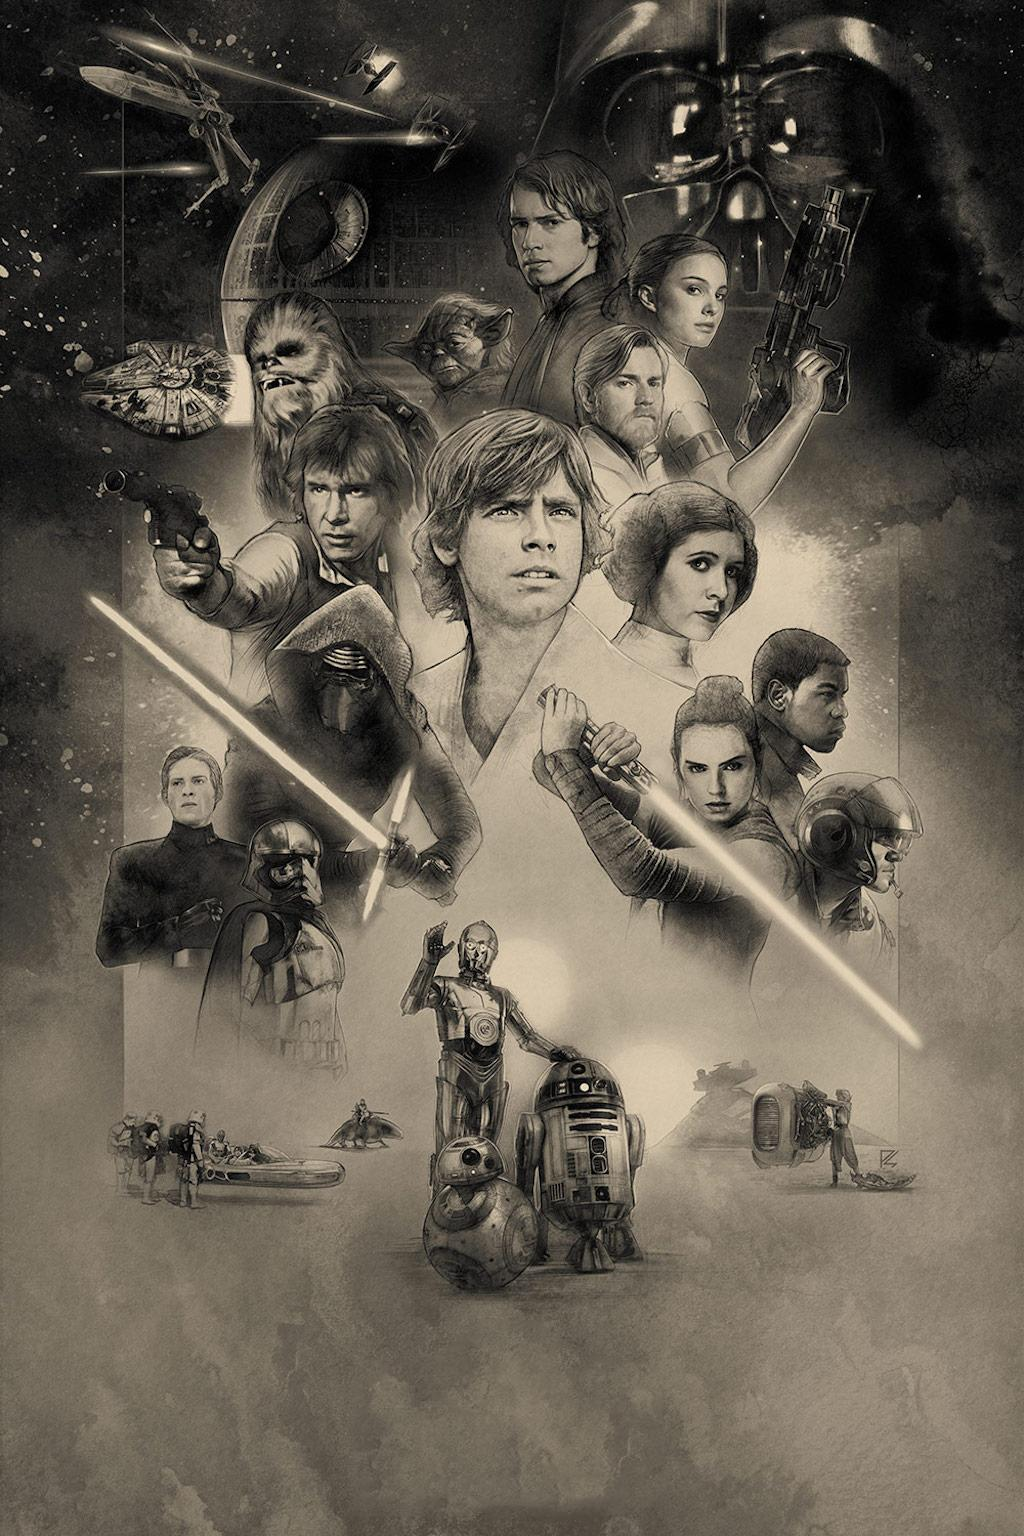 star-wars-celebration-2017-poster-textless.jpg